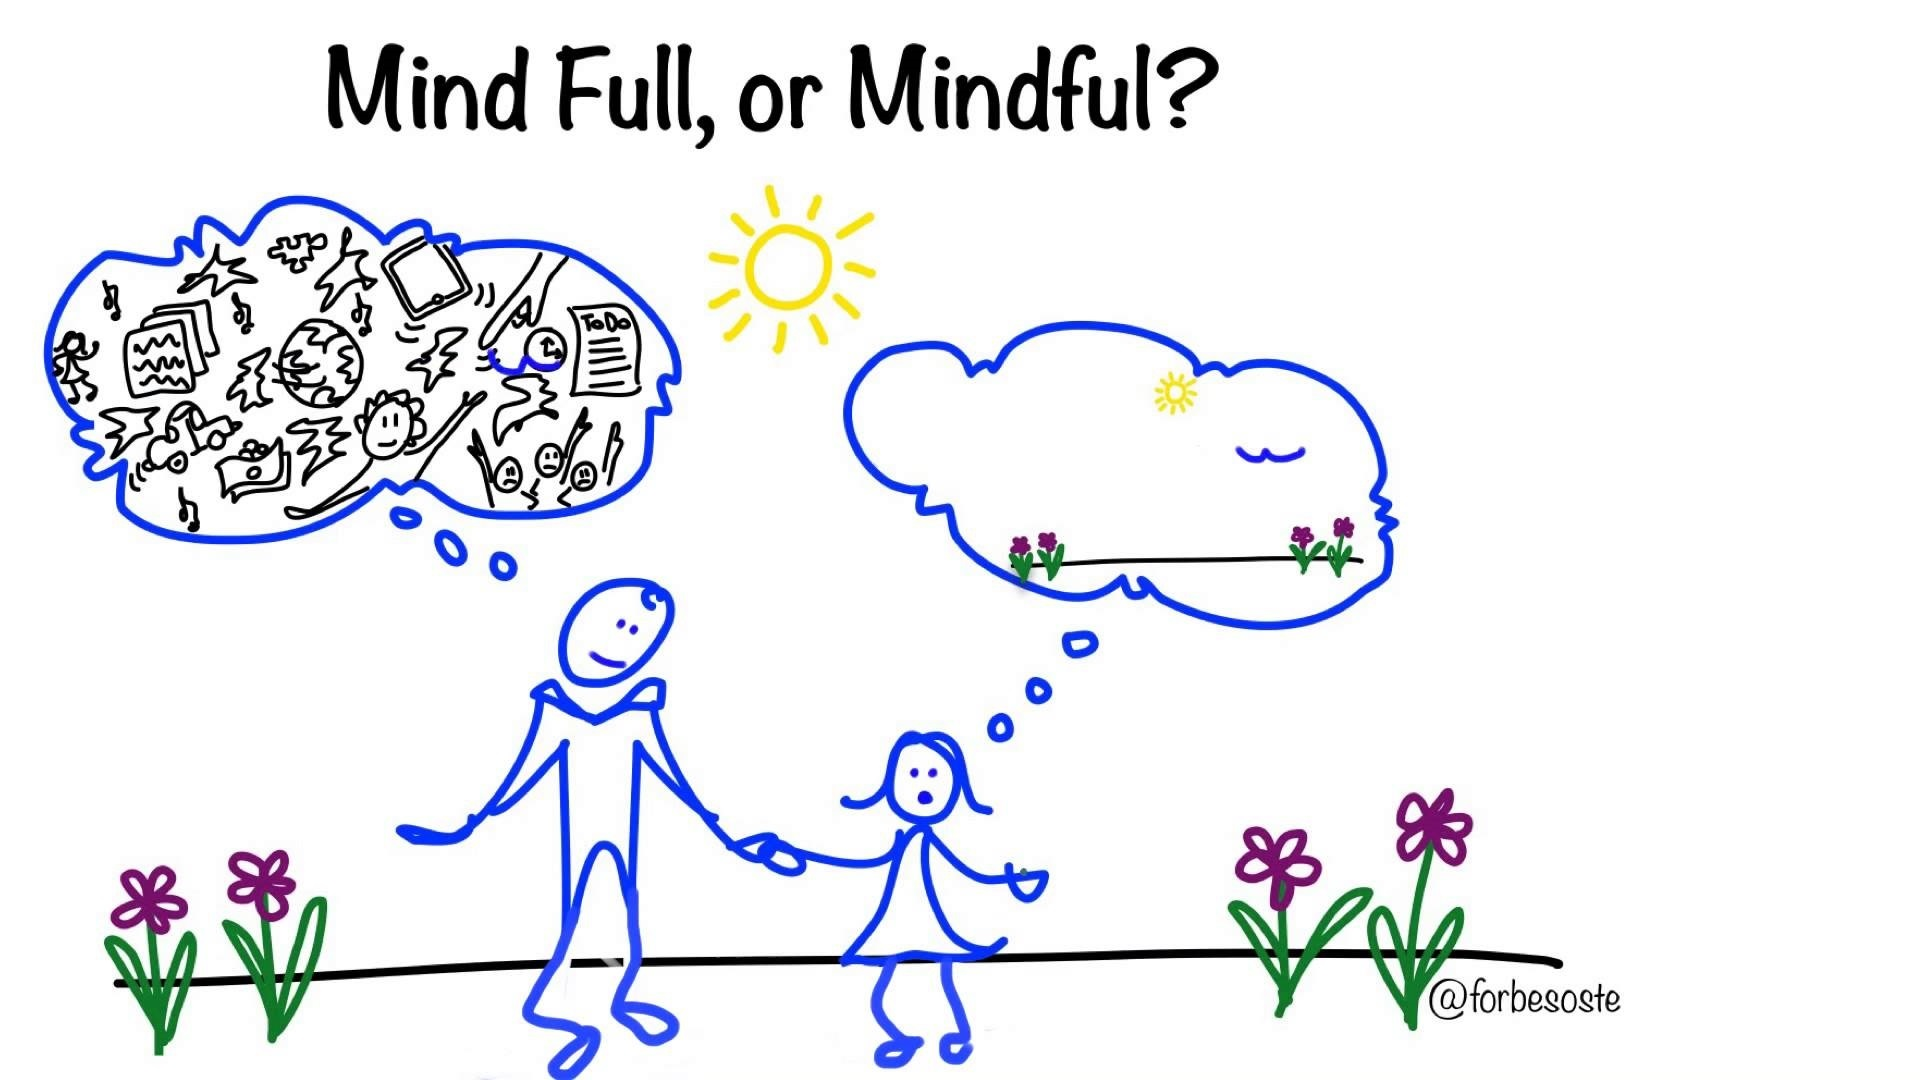 4website - mindfulness 01 two options Engels